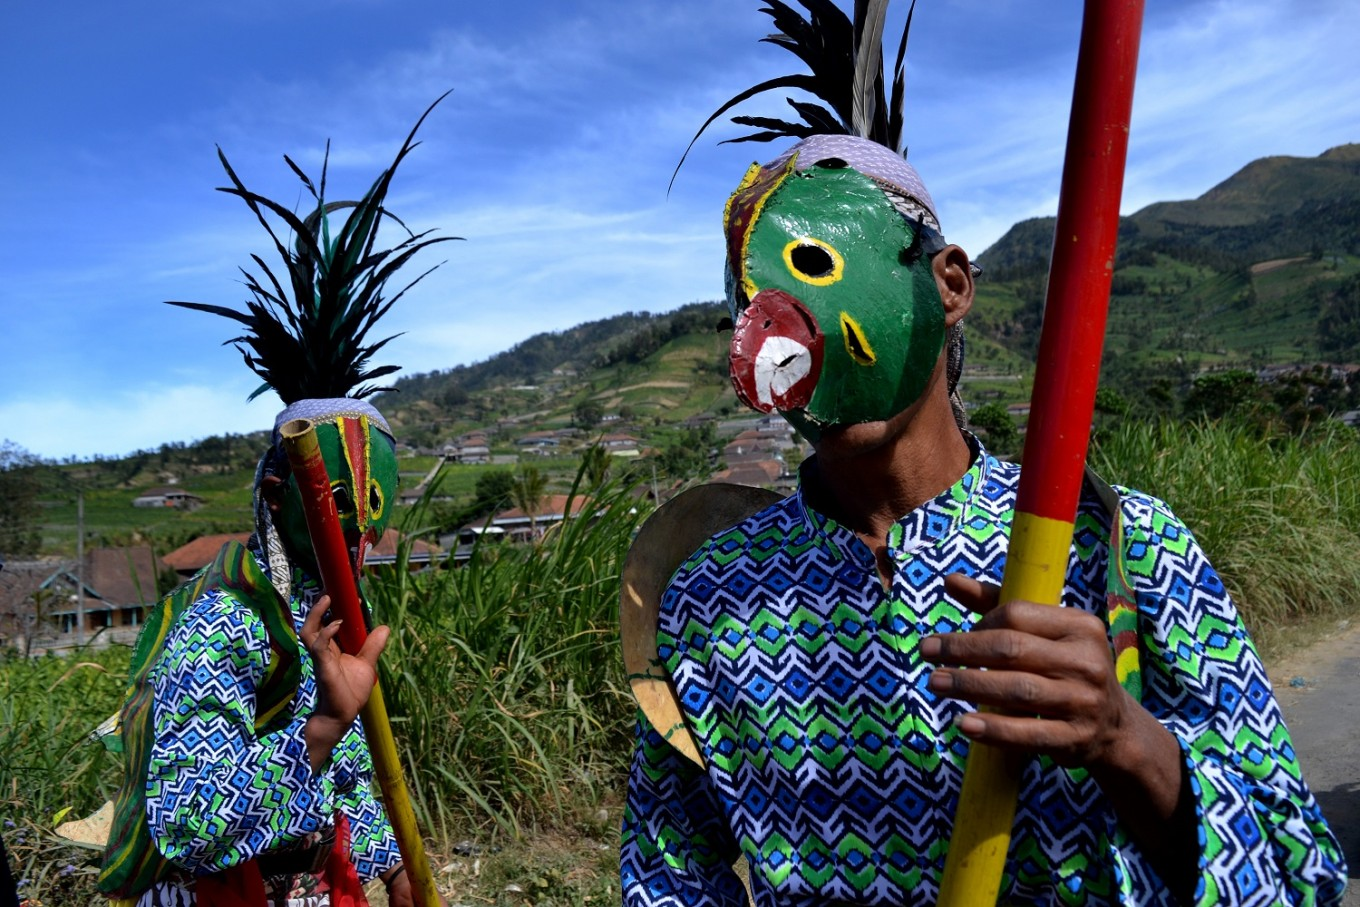 A mask dance performance during the Tungguk Tembakau Festival.